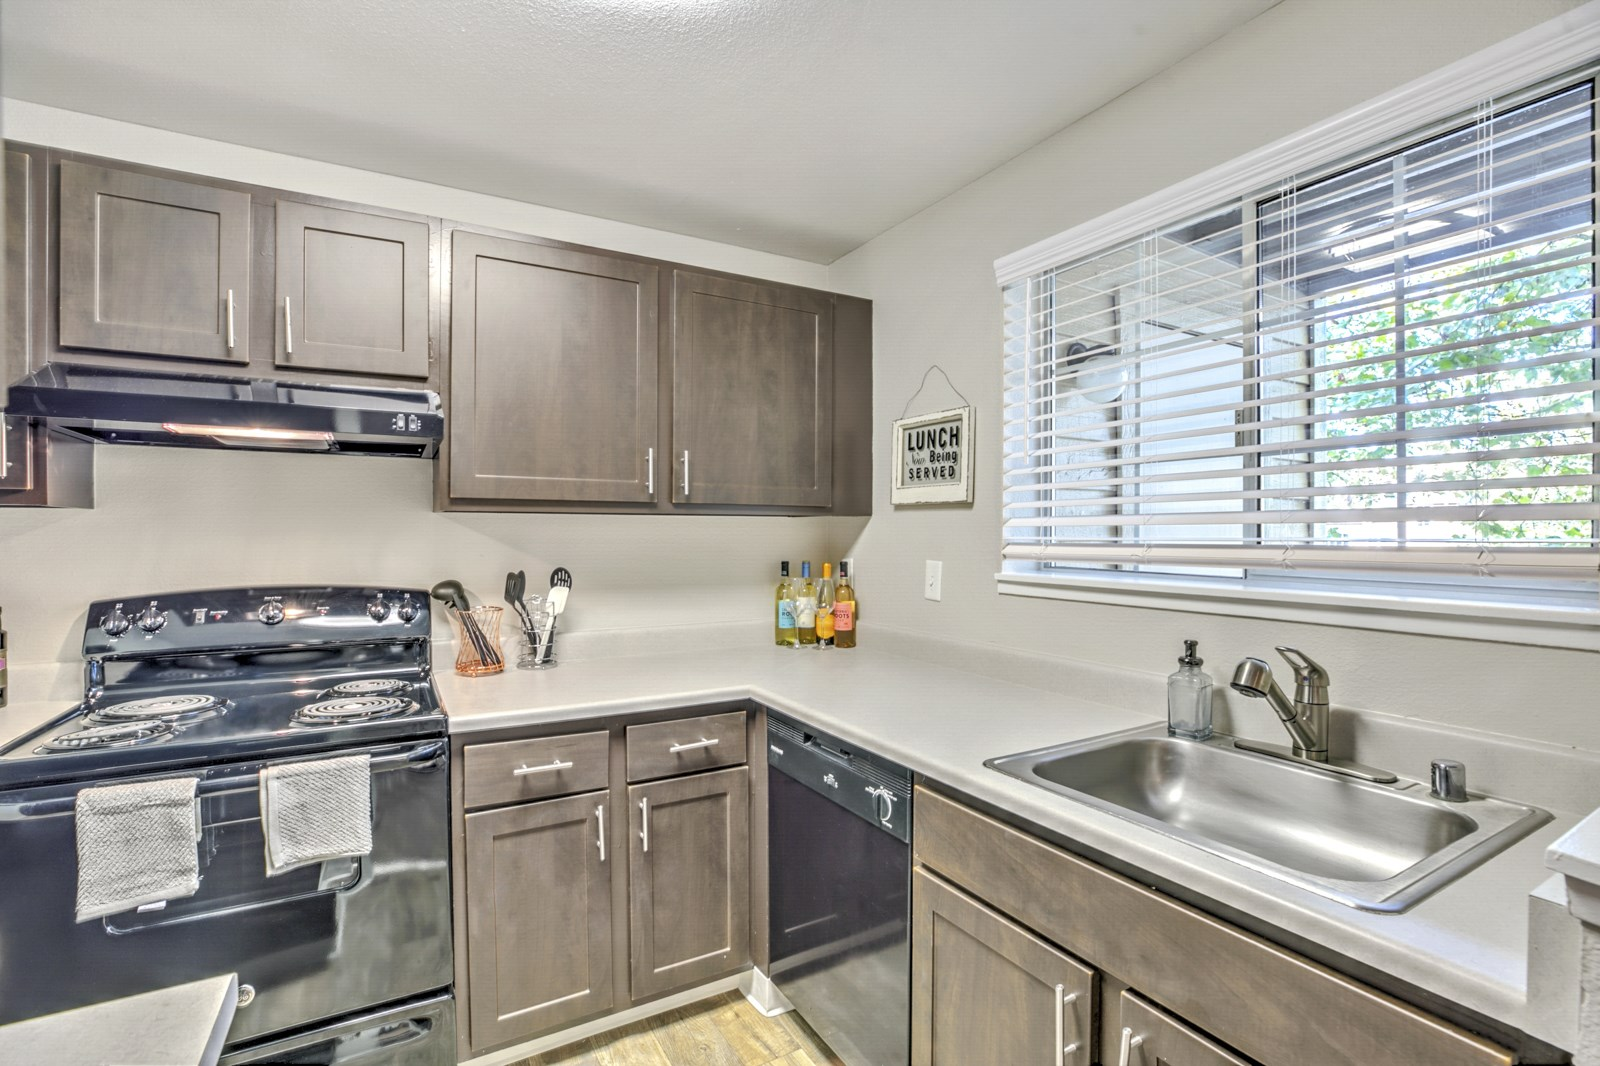 Renton WA Apartments - The Windsor Apartments Kitchen With Black Appliances, Stainless Steel Sink and Sleek Cabinets and Countertops